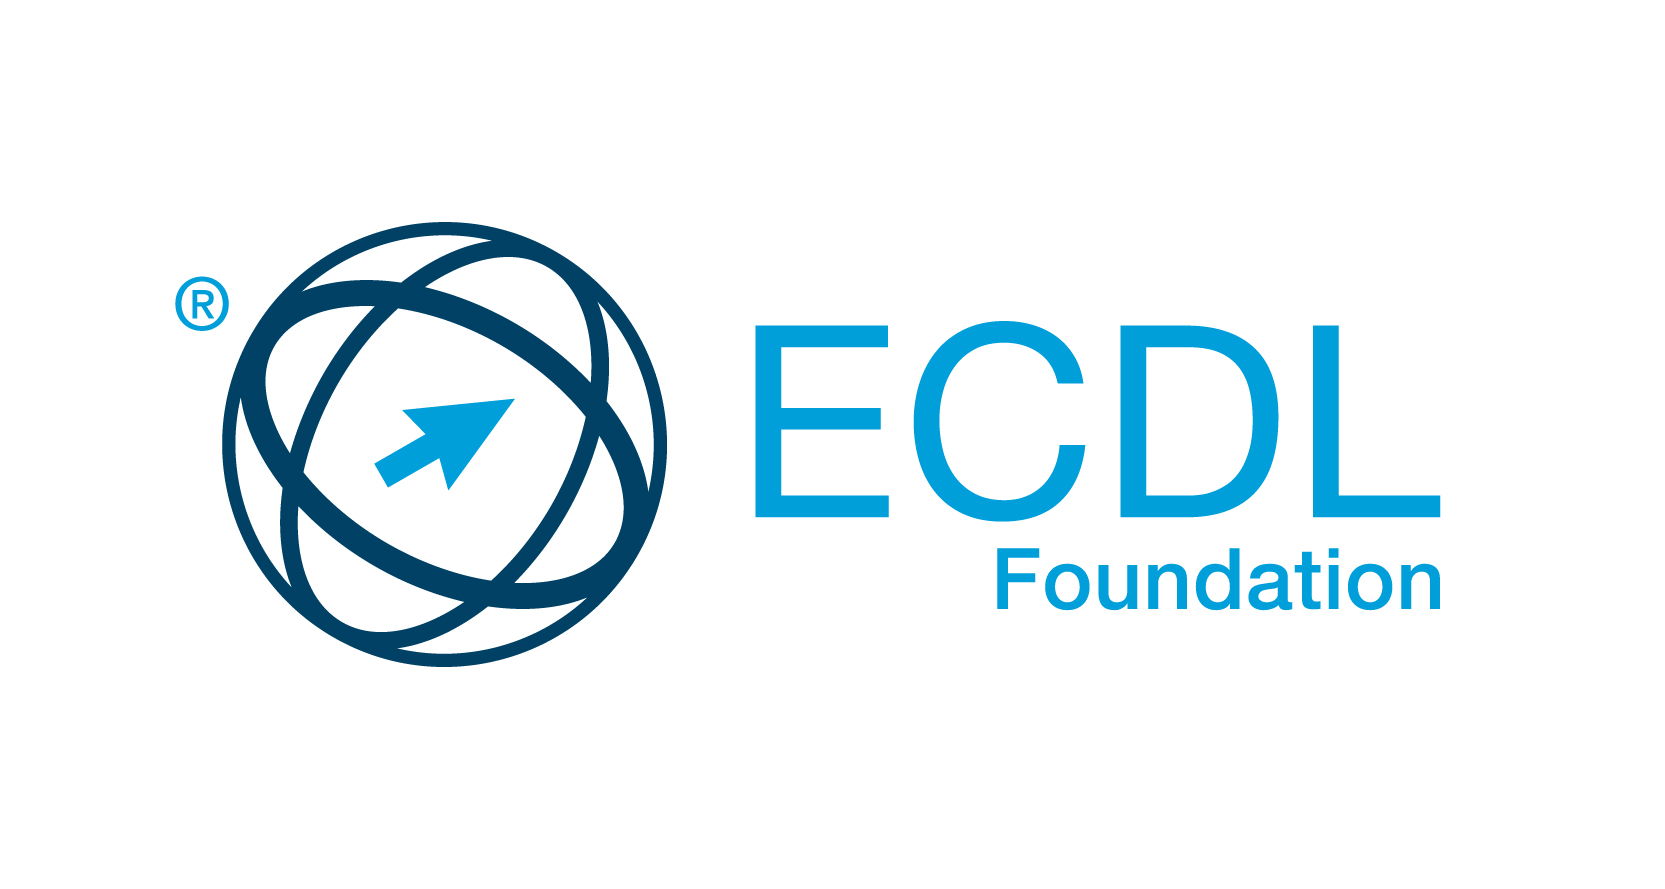 Ecdl-foundation-300dpi.jpg